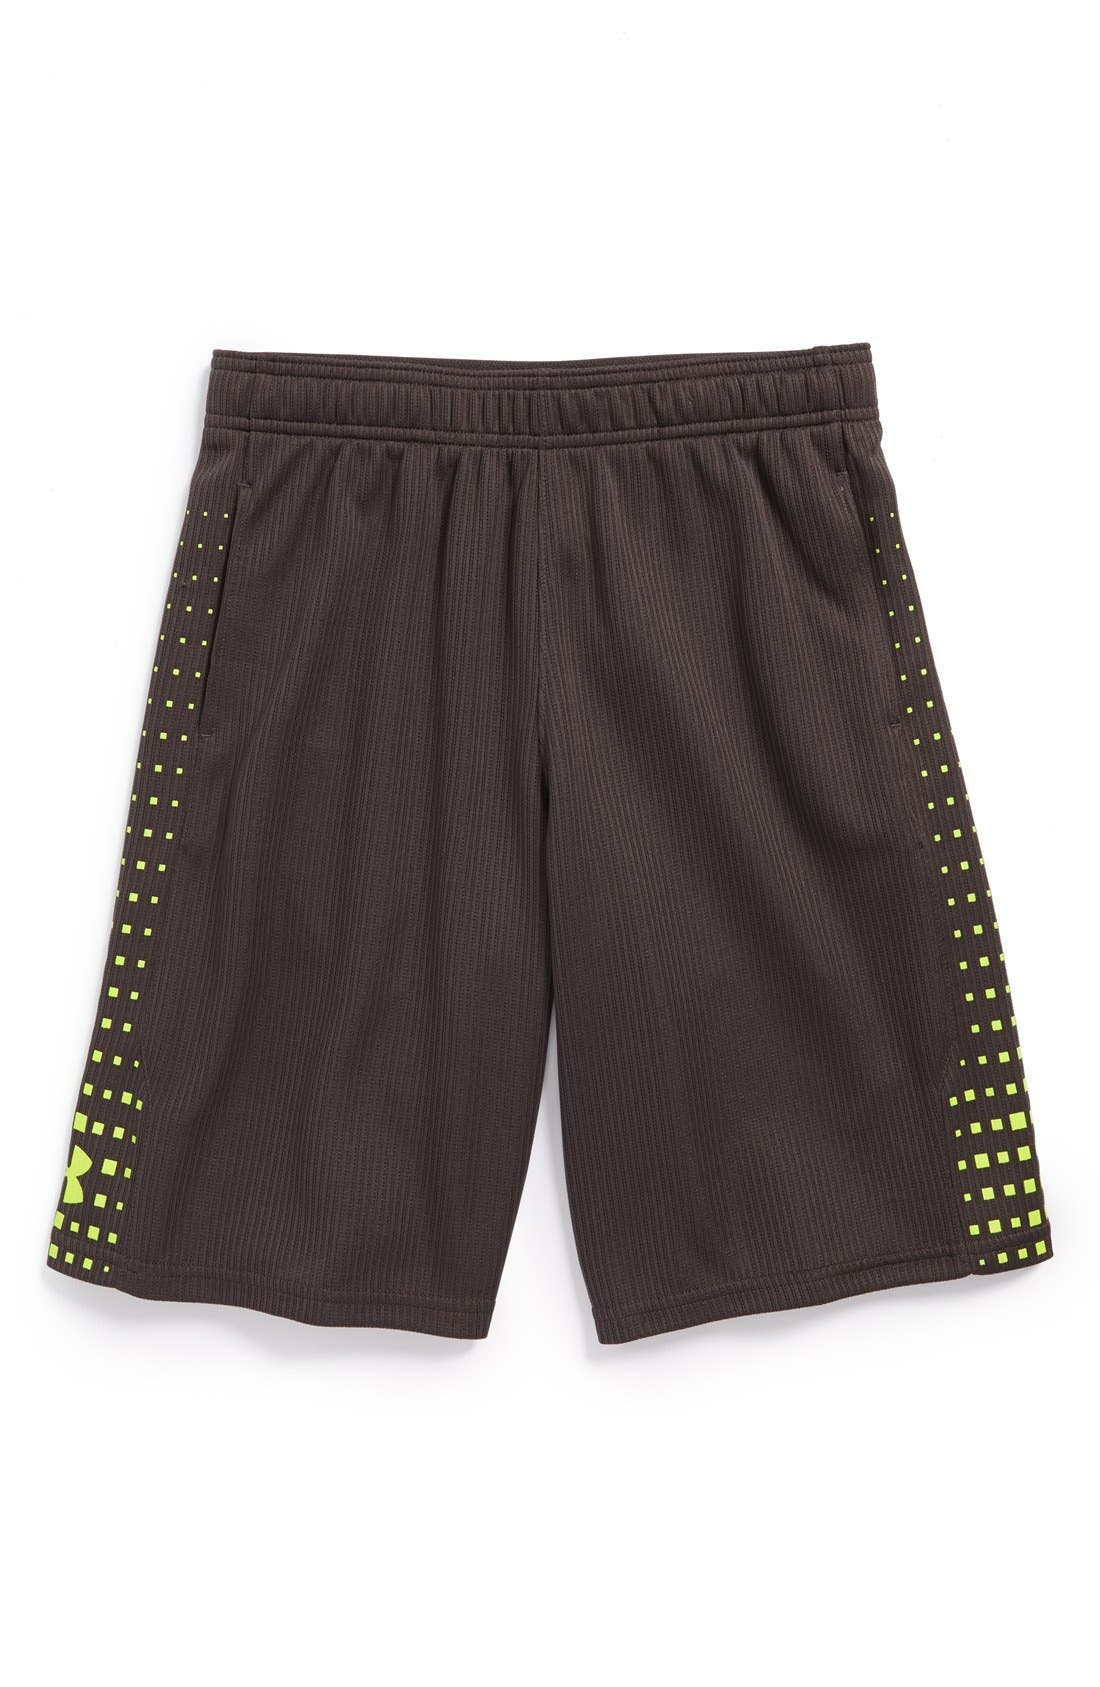 Main Image - Under Armour 'Done. Done. Done.' HeatGear® Shorts (Big Boys)